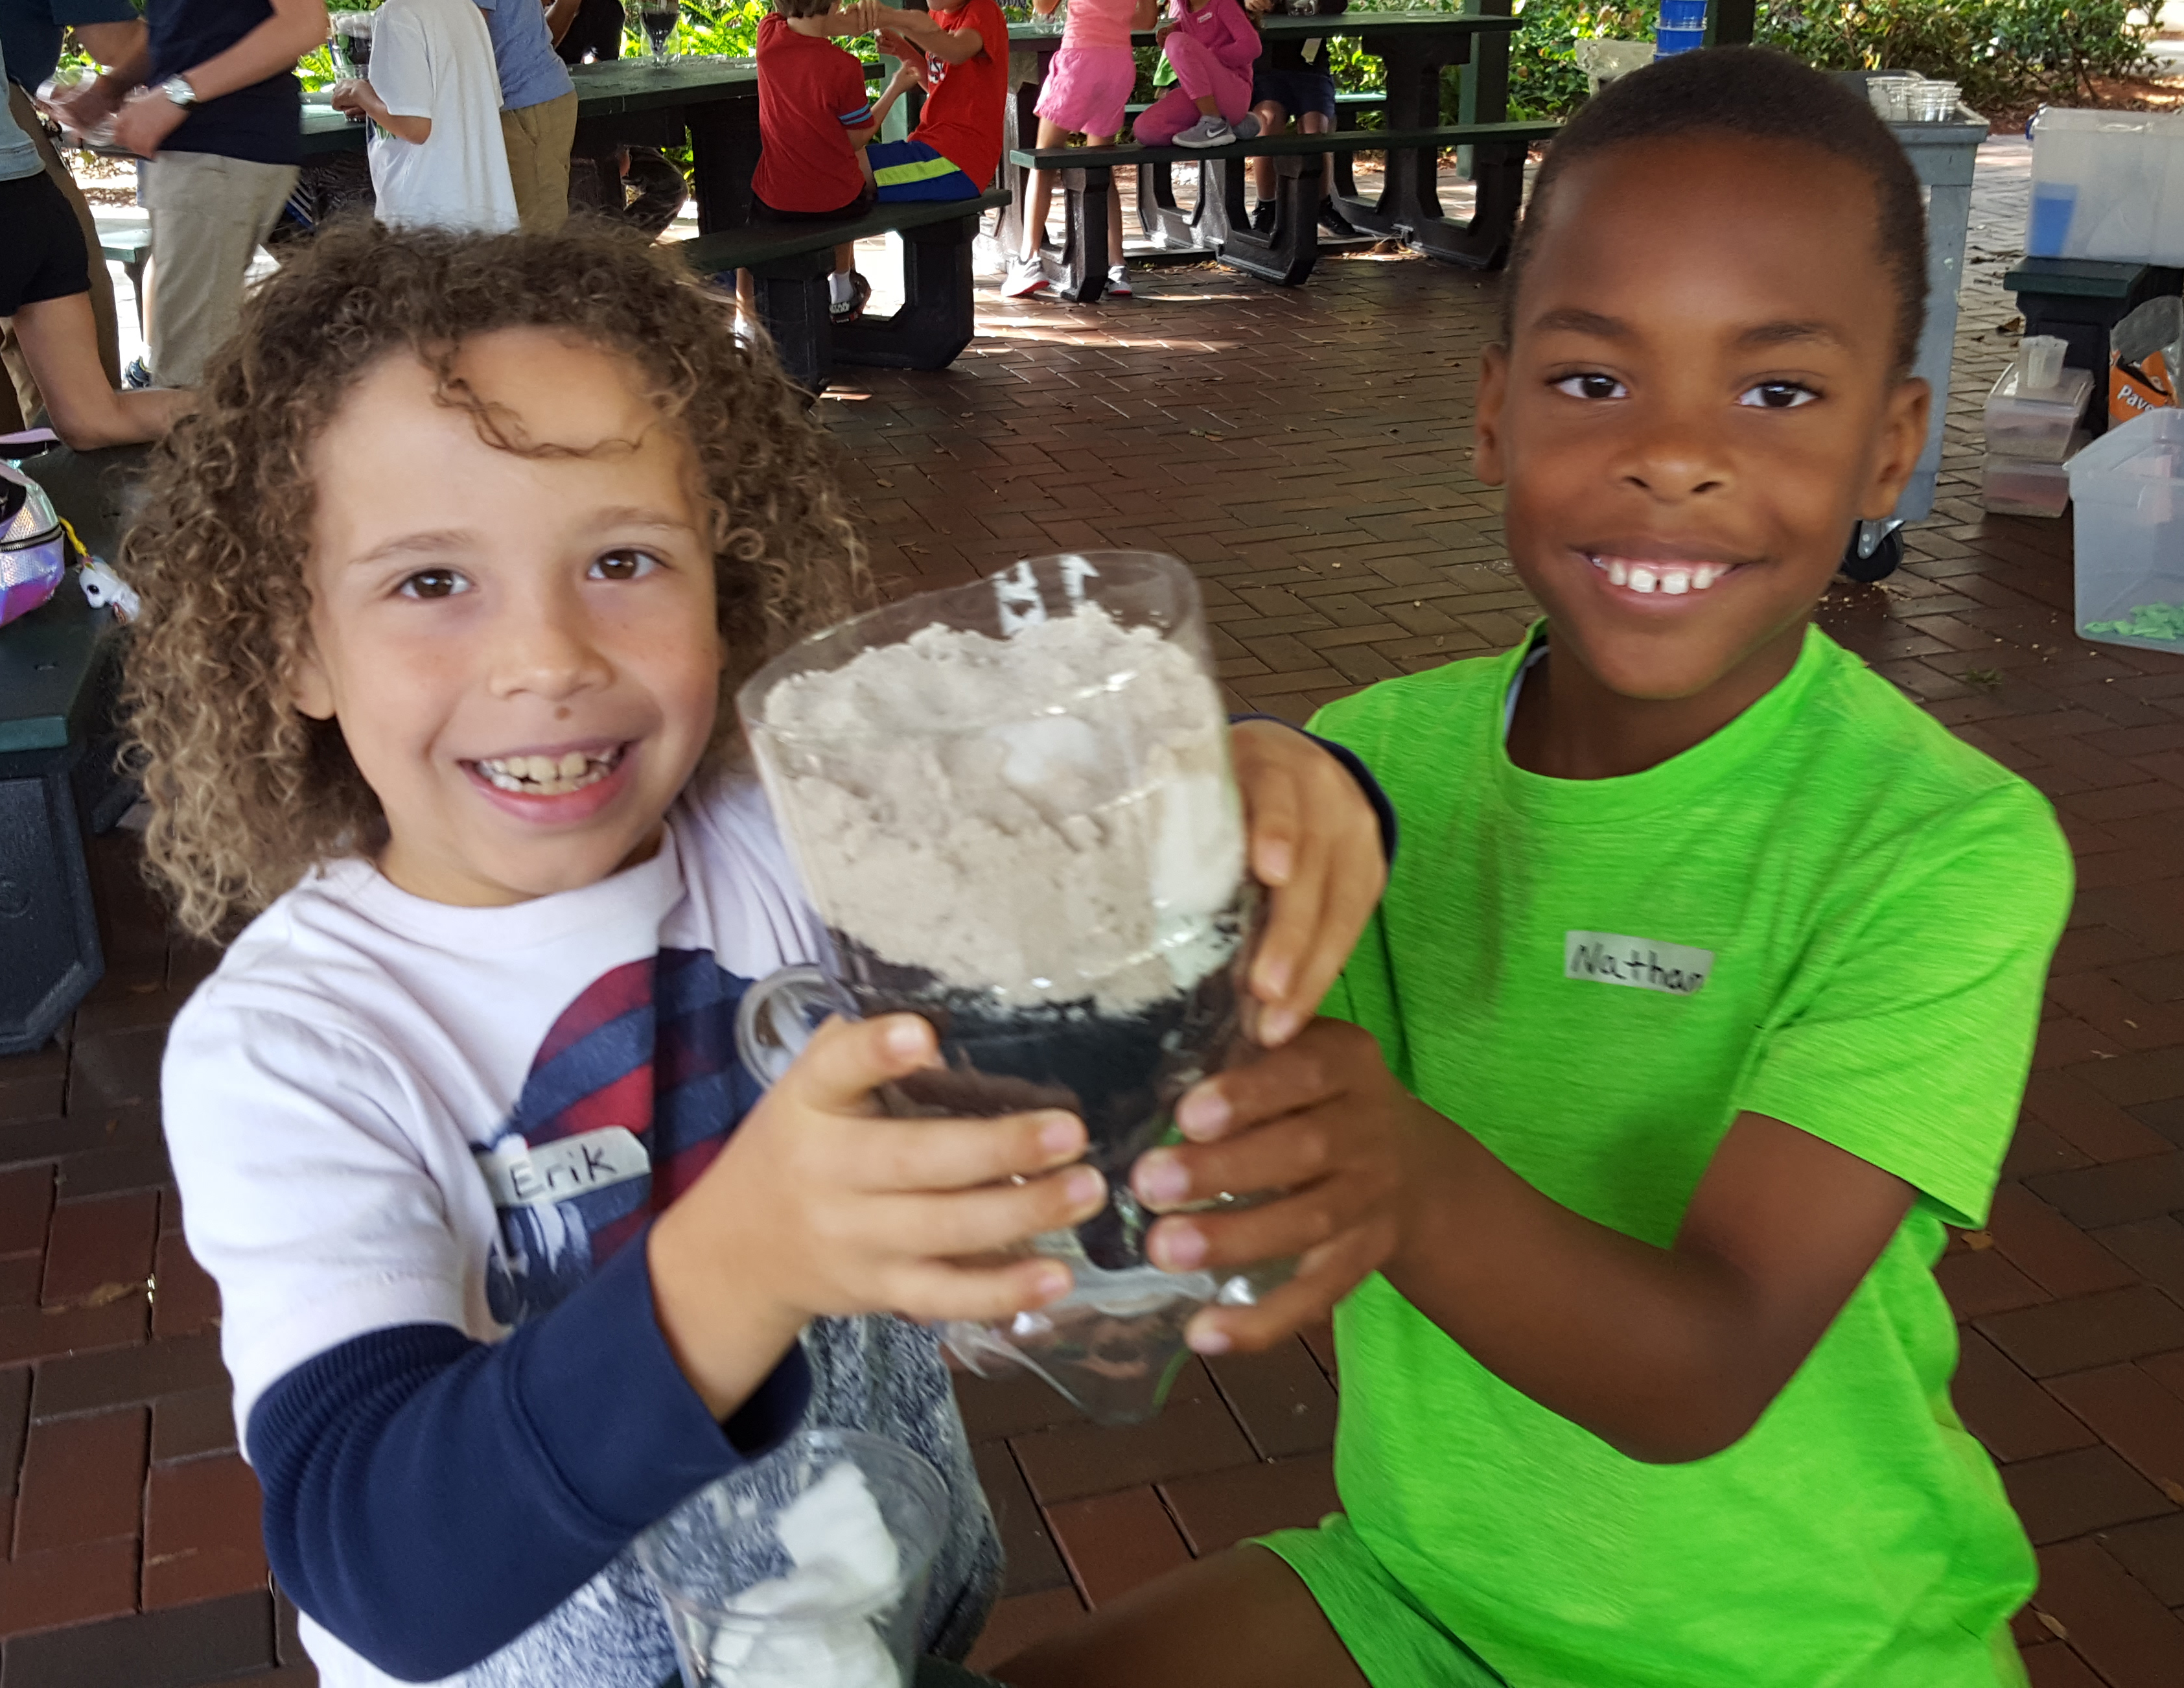 Two boys show off a science creation